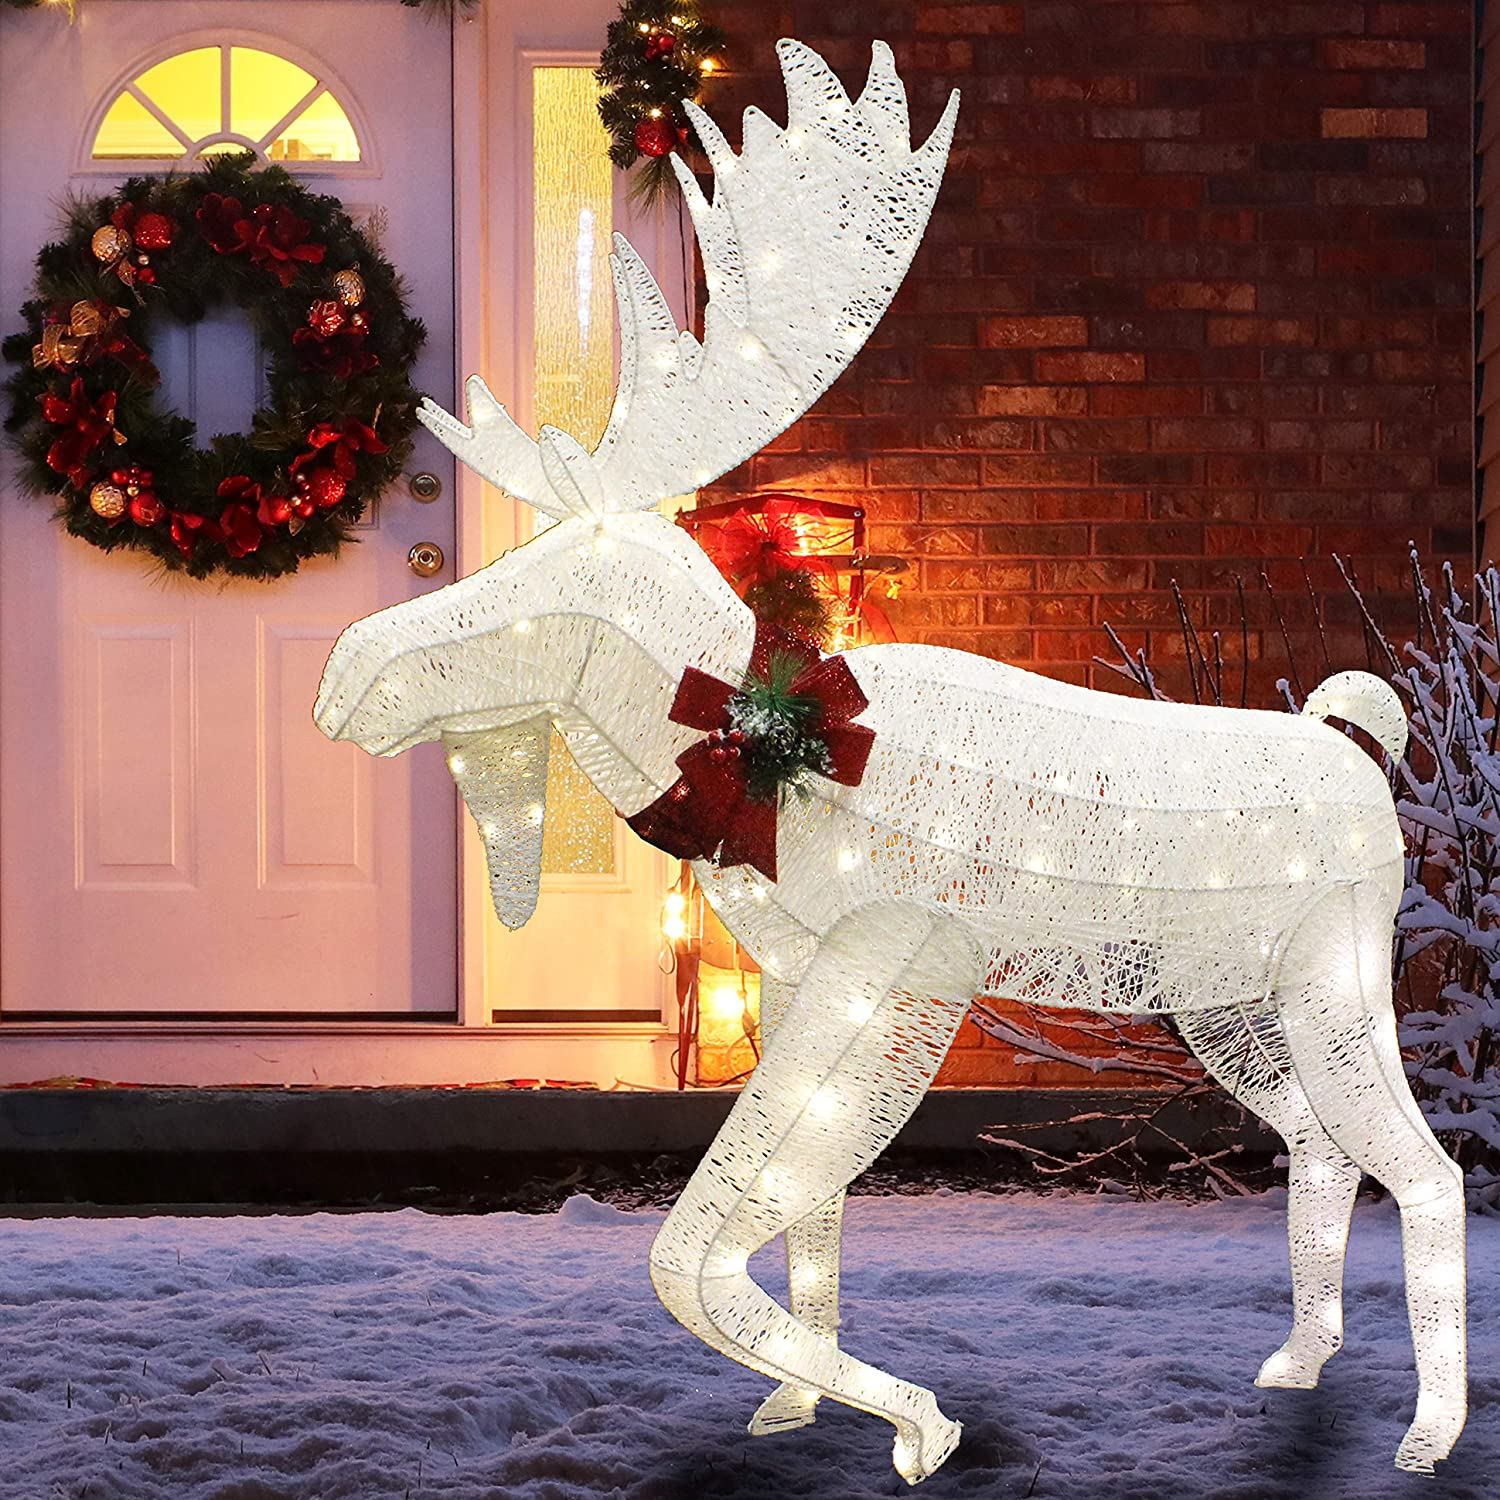 Joiedomi 5ft Cotton Moose LED Yard Light for Christmas Outdoor Yard Garden Decorations, Christmas Event Decoration, Christmas Eve Night Decor